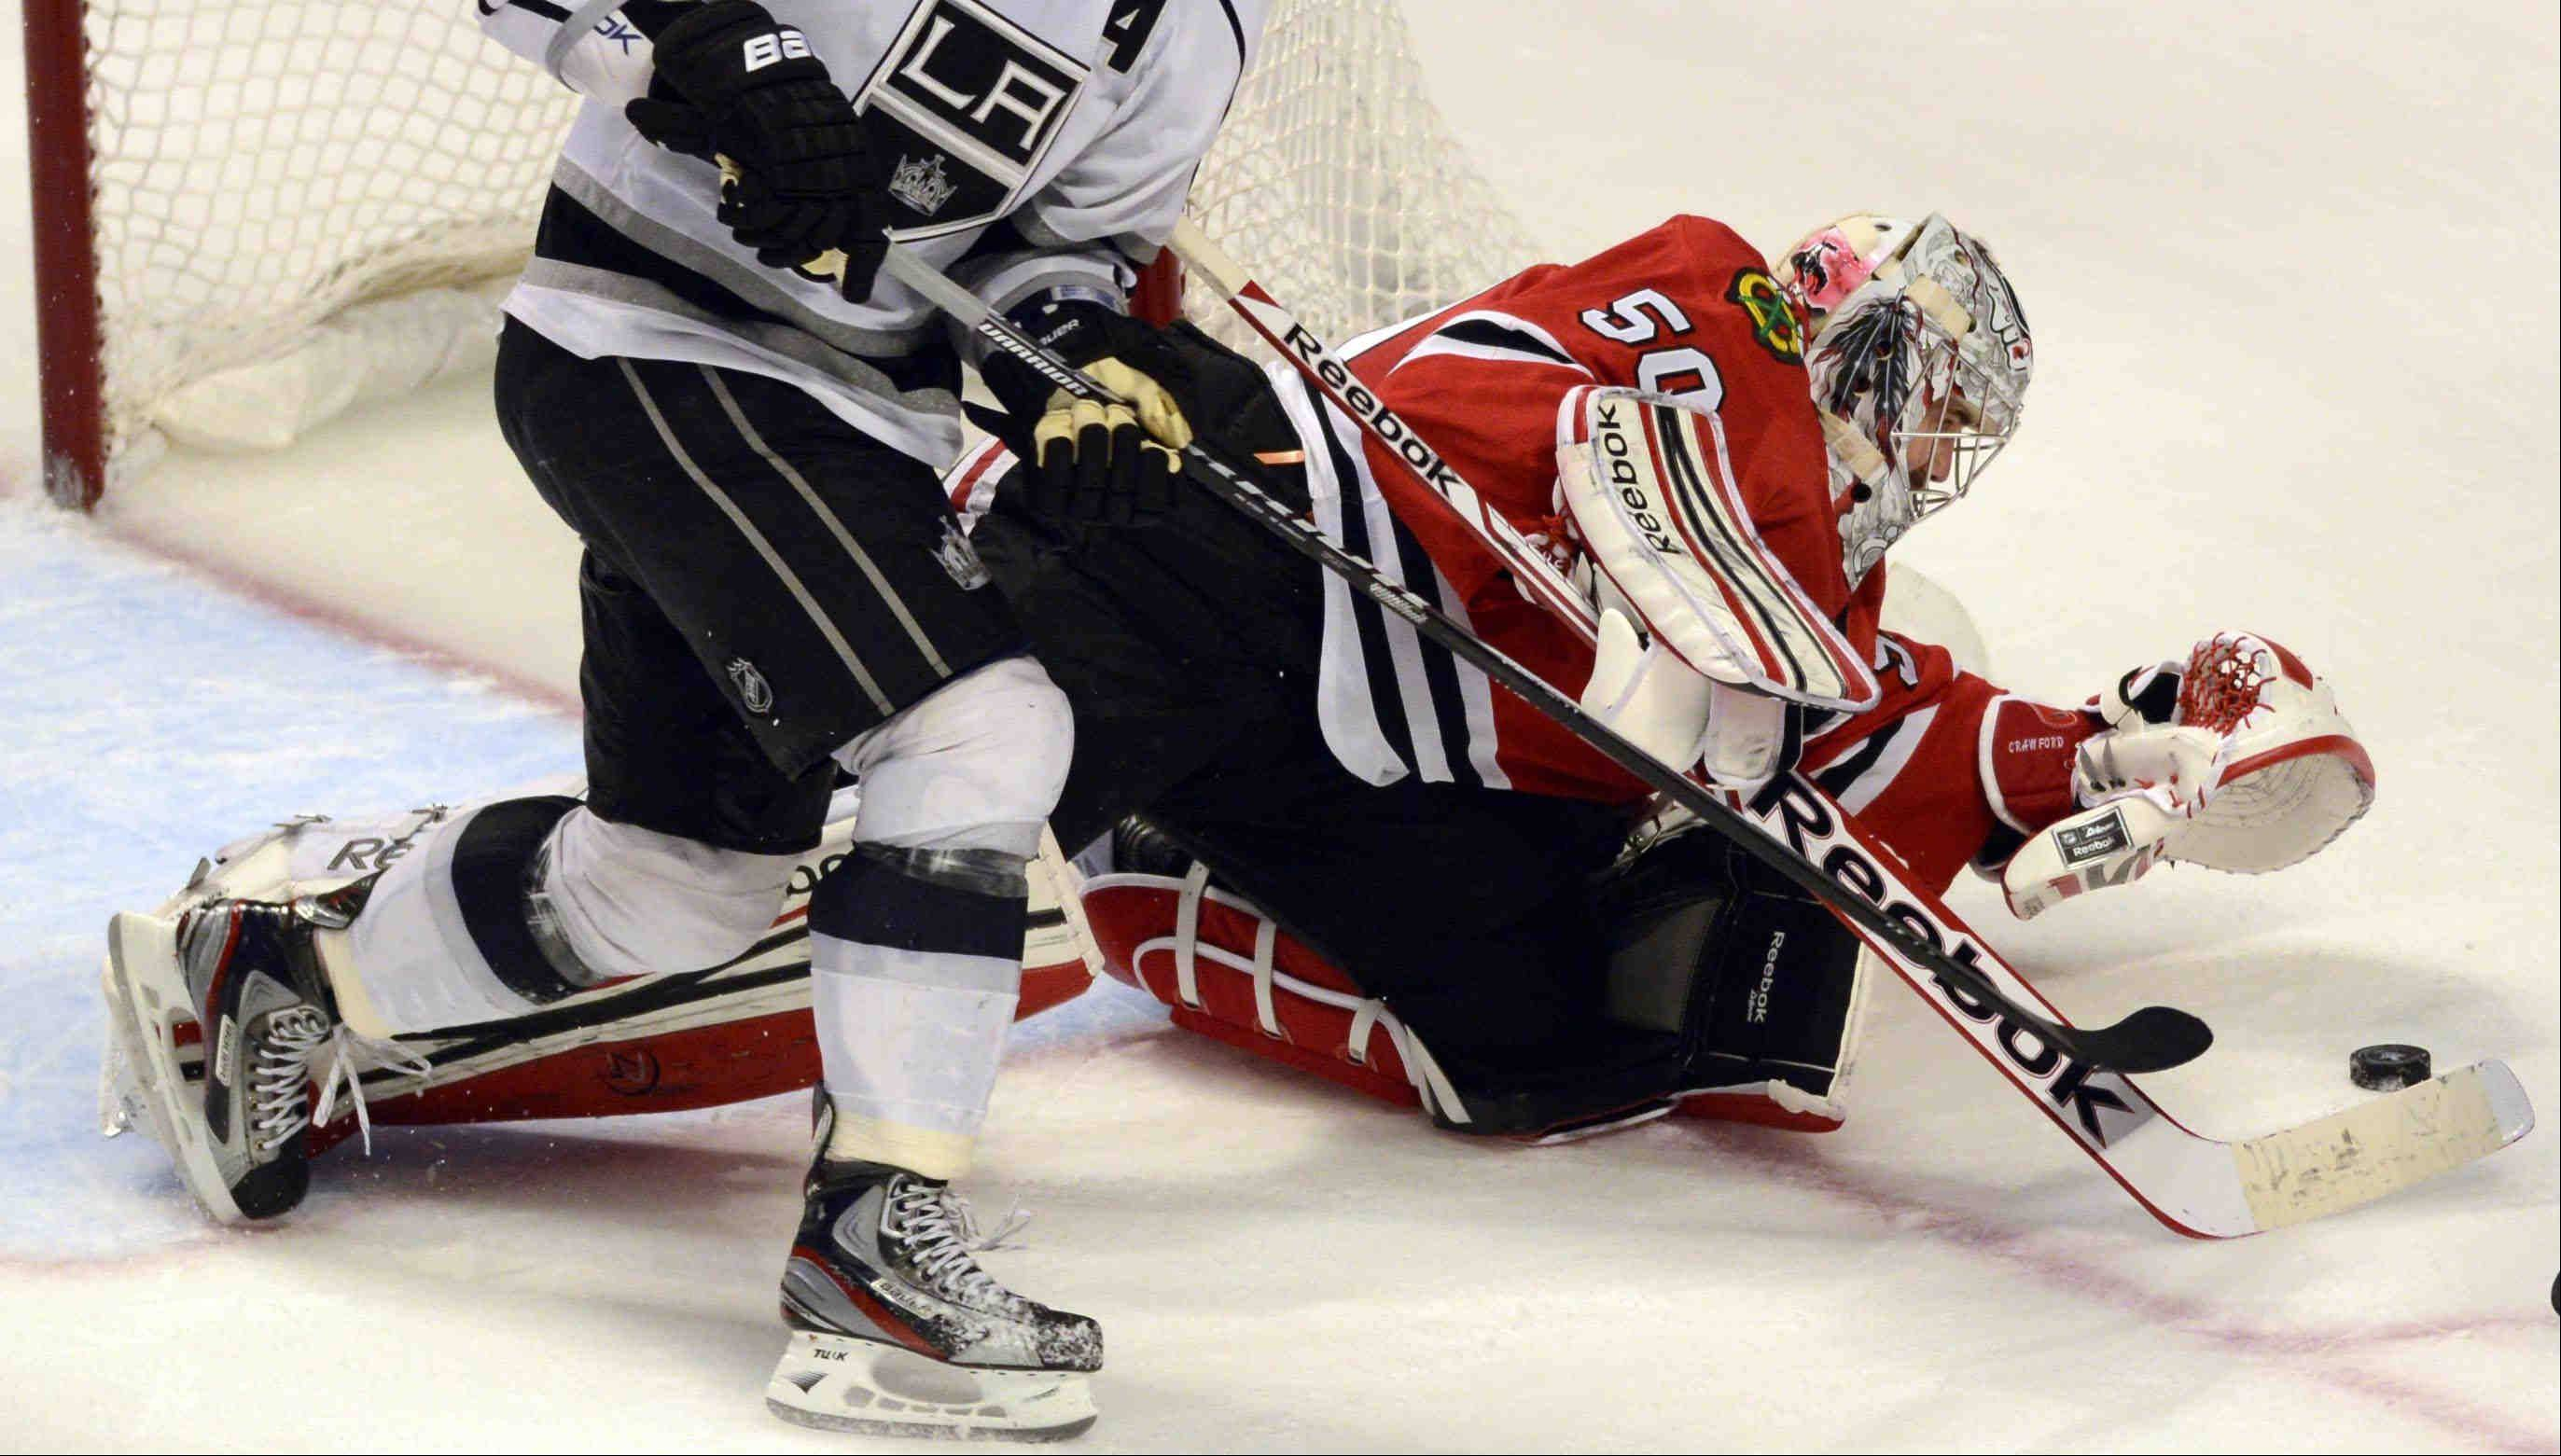 Chicago Blackhawks goalie Corey Crawford leans out of the net to make a save against the Los Angeles Kings during game 2 of the NHL Western Conference finals at the United Center Sunday night in Chicago.